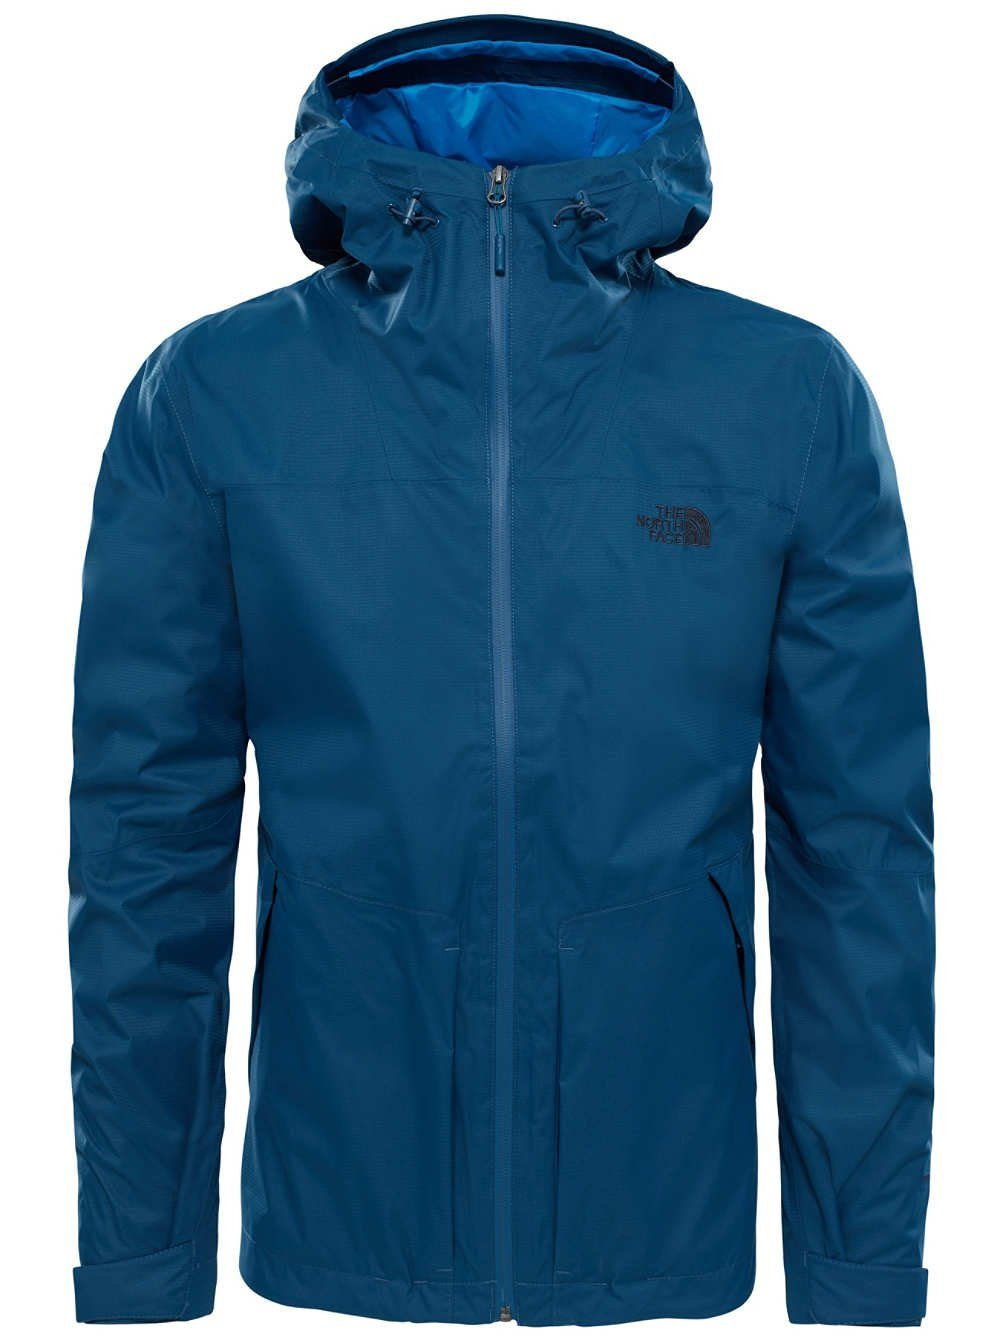 Monterey bleu M The North Face Frost Peak Einzippjacke Veste Homme